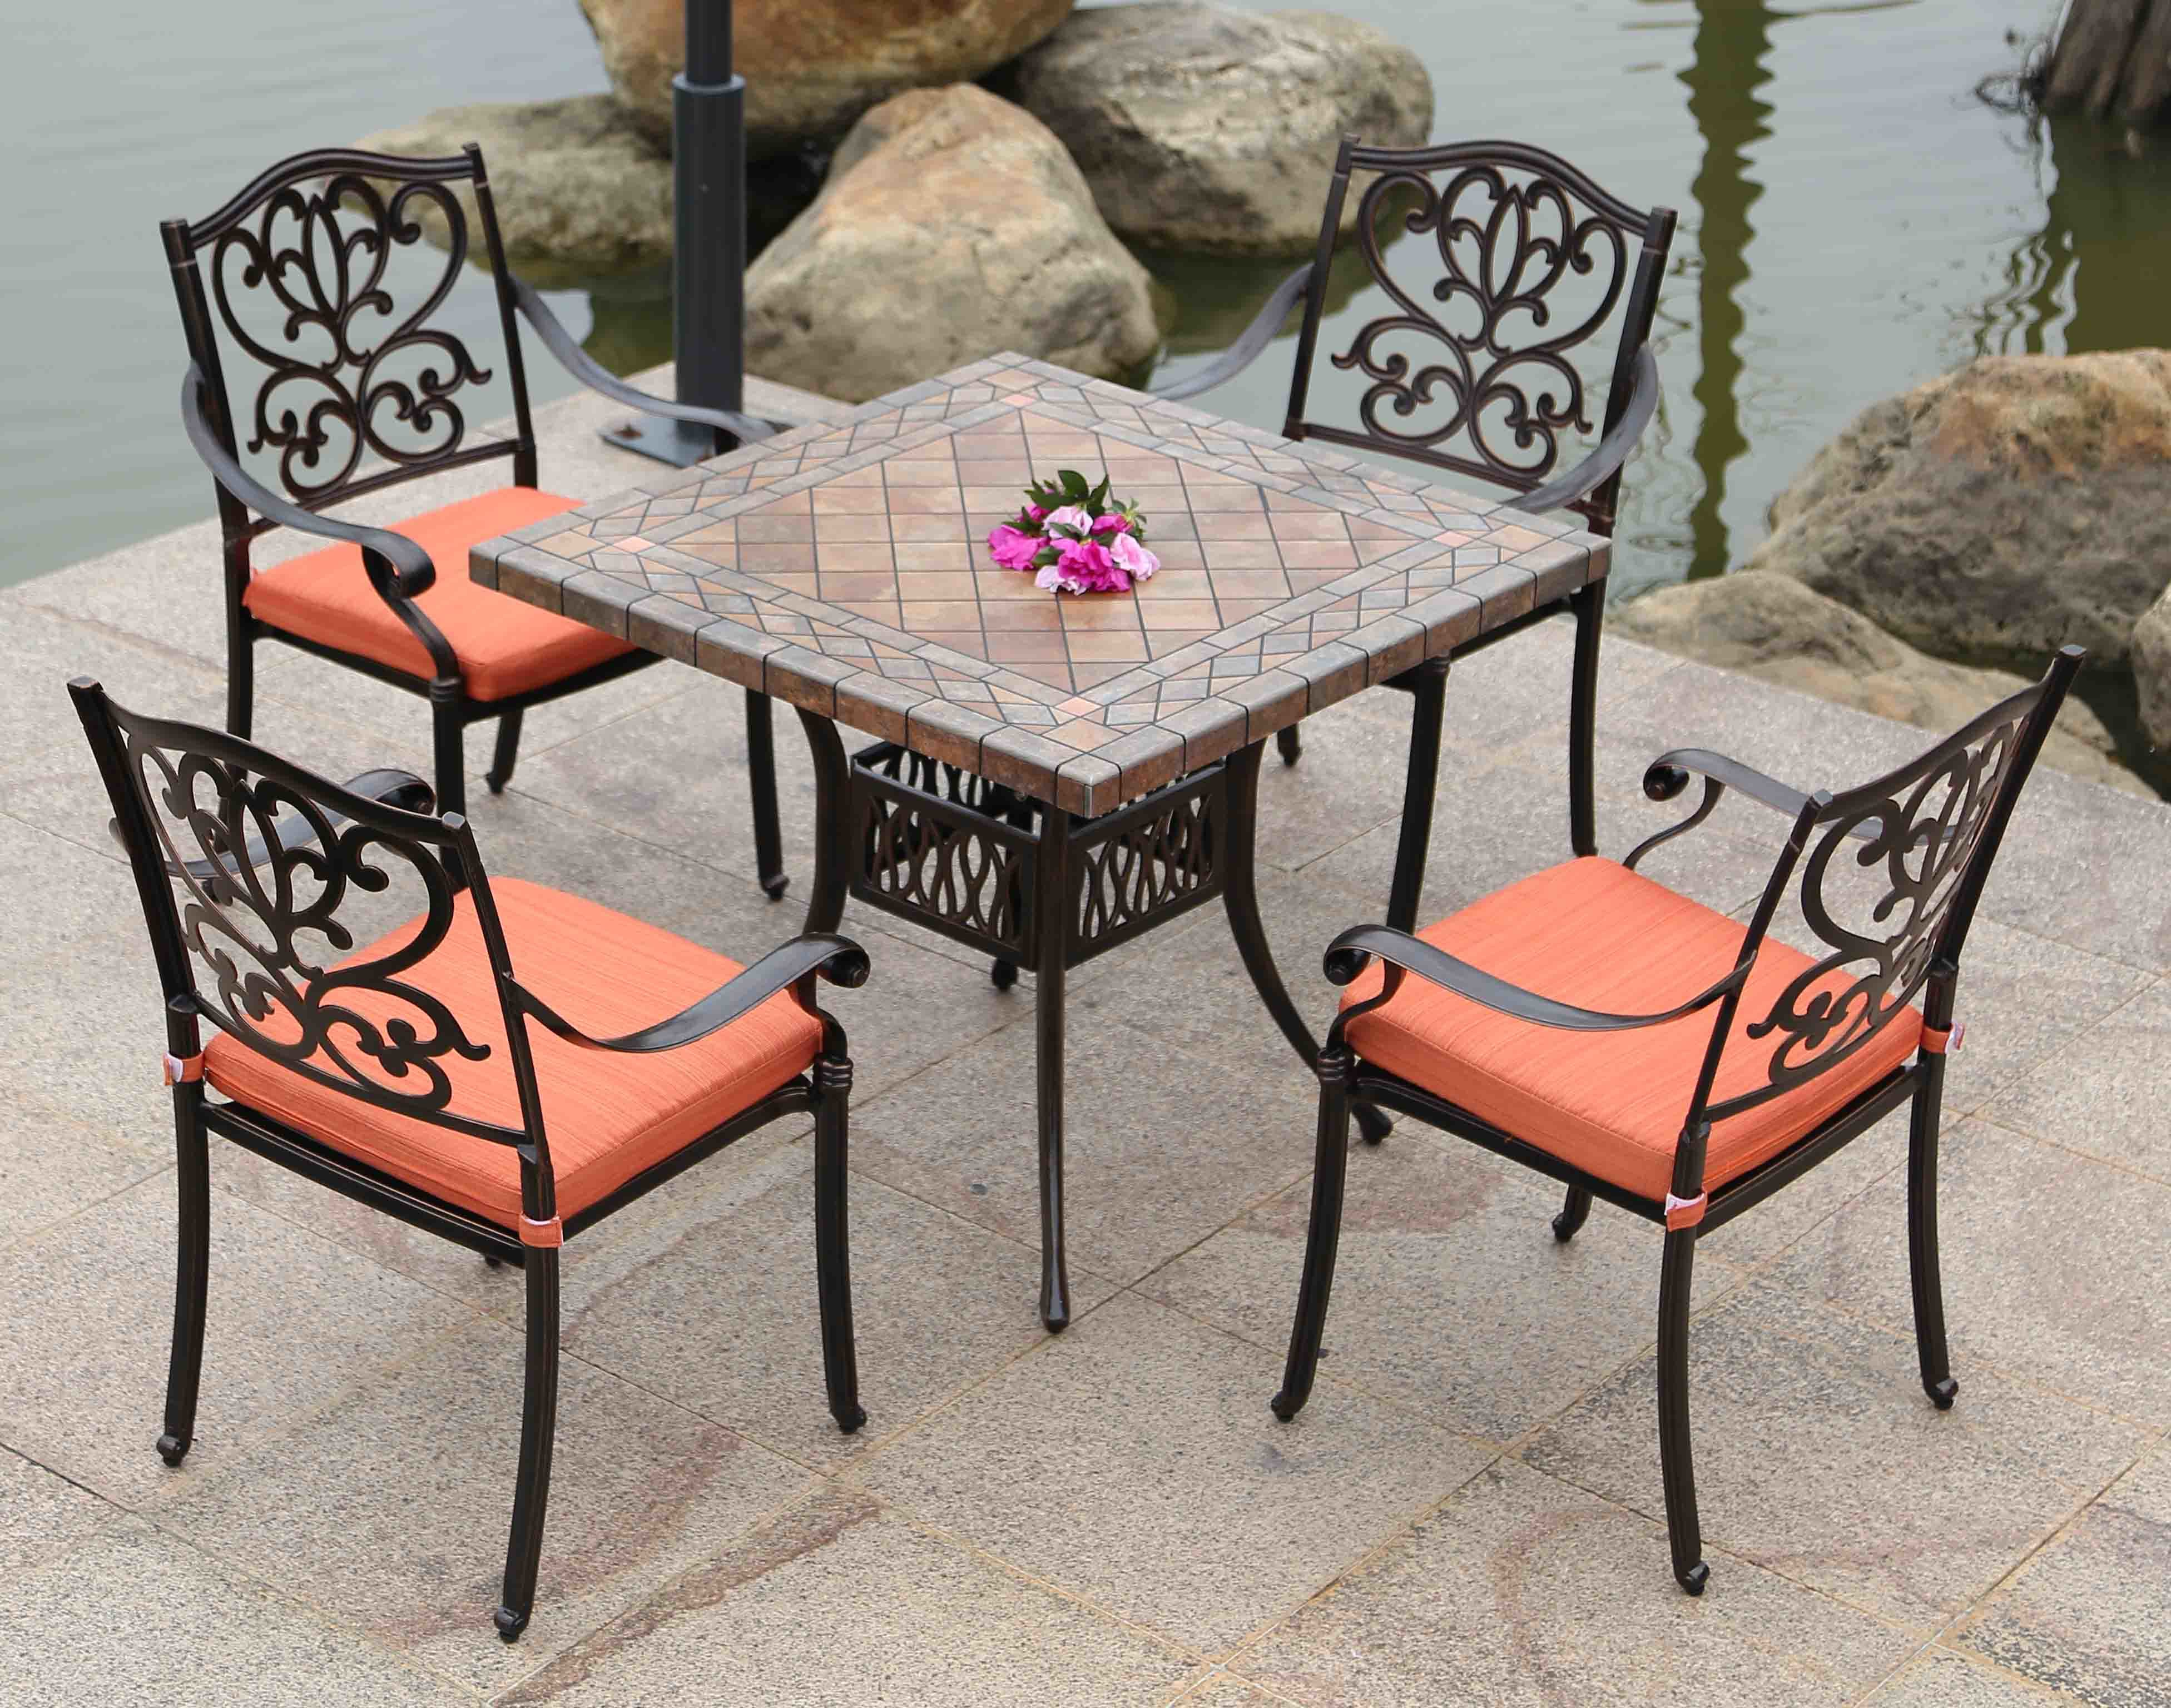 Brilliant Hot Item New Design Cast Aluminum Outdoor Furniture For Usa Canada Garden Party Dinner Use Download Free Architecture Designs Scobabritishbridgeorg